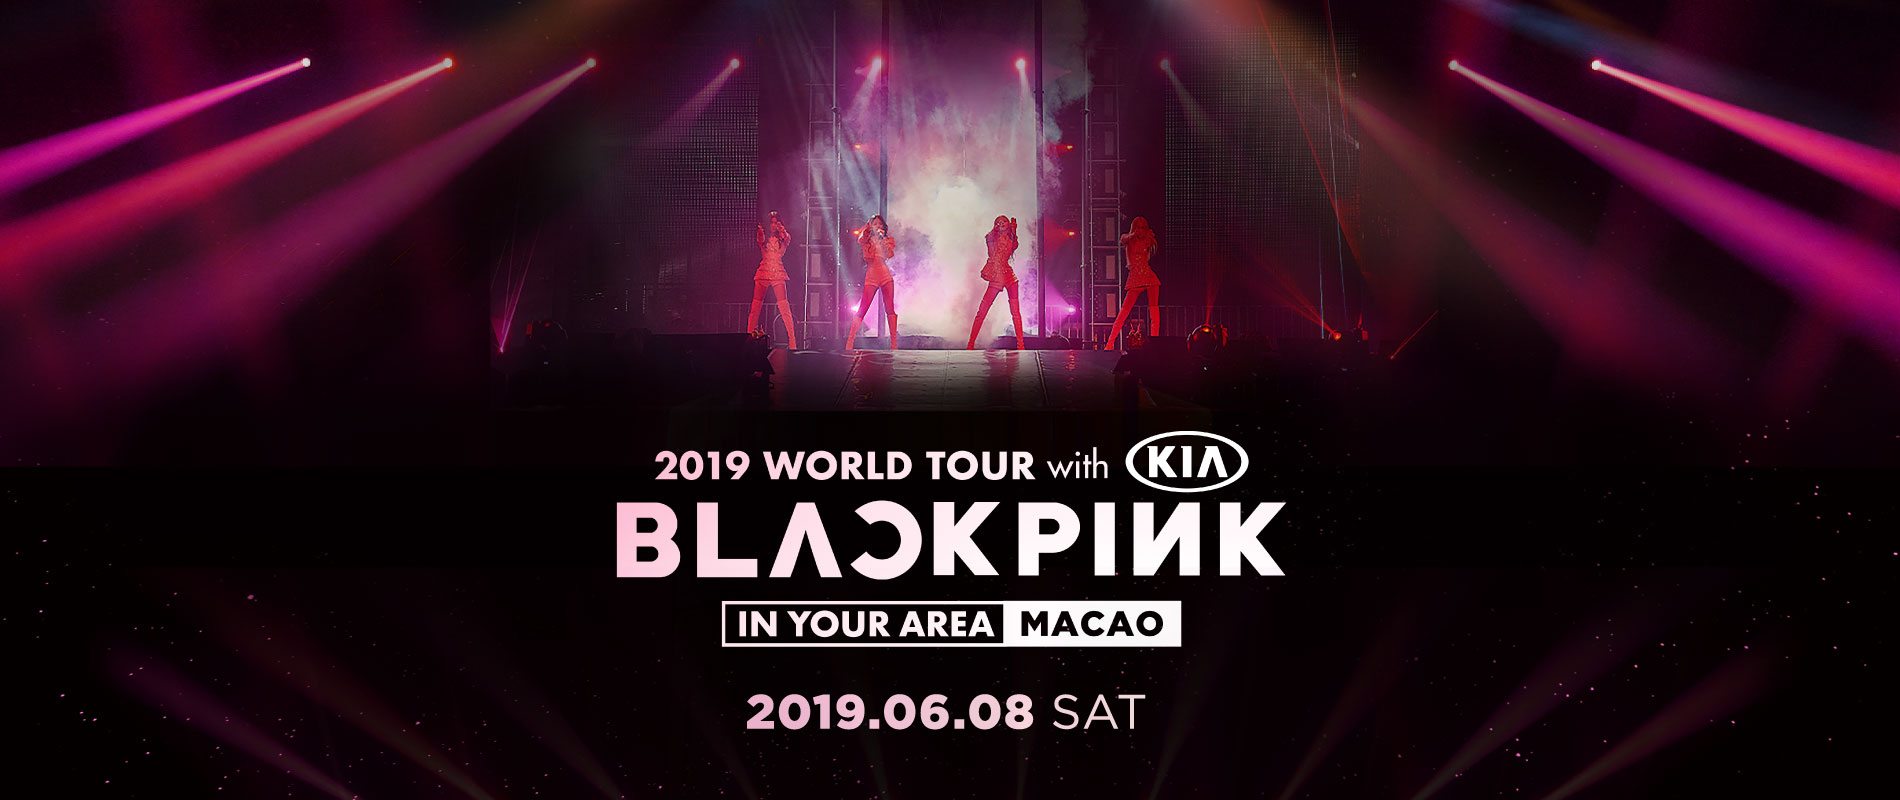 Blackpink 2019 World Tour With Kia In Your Area Macao